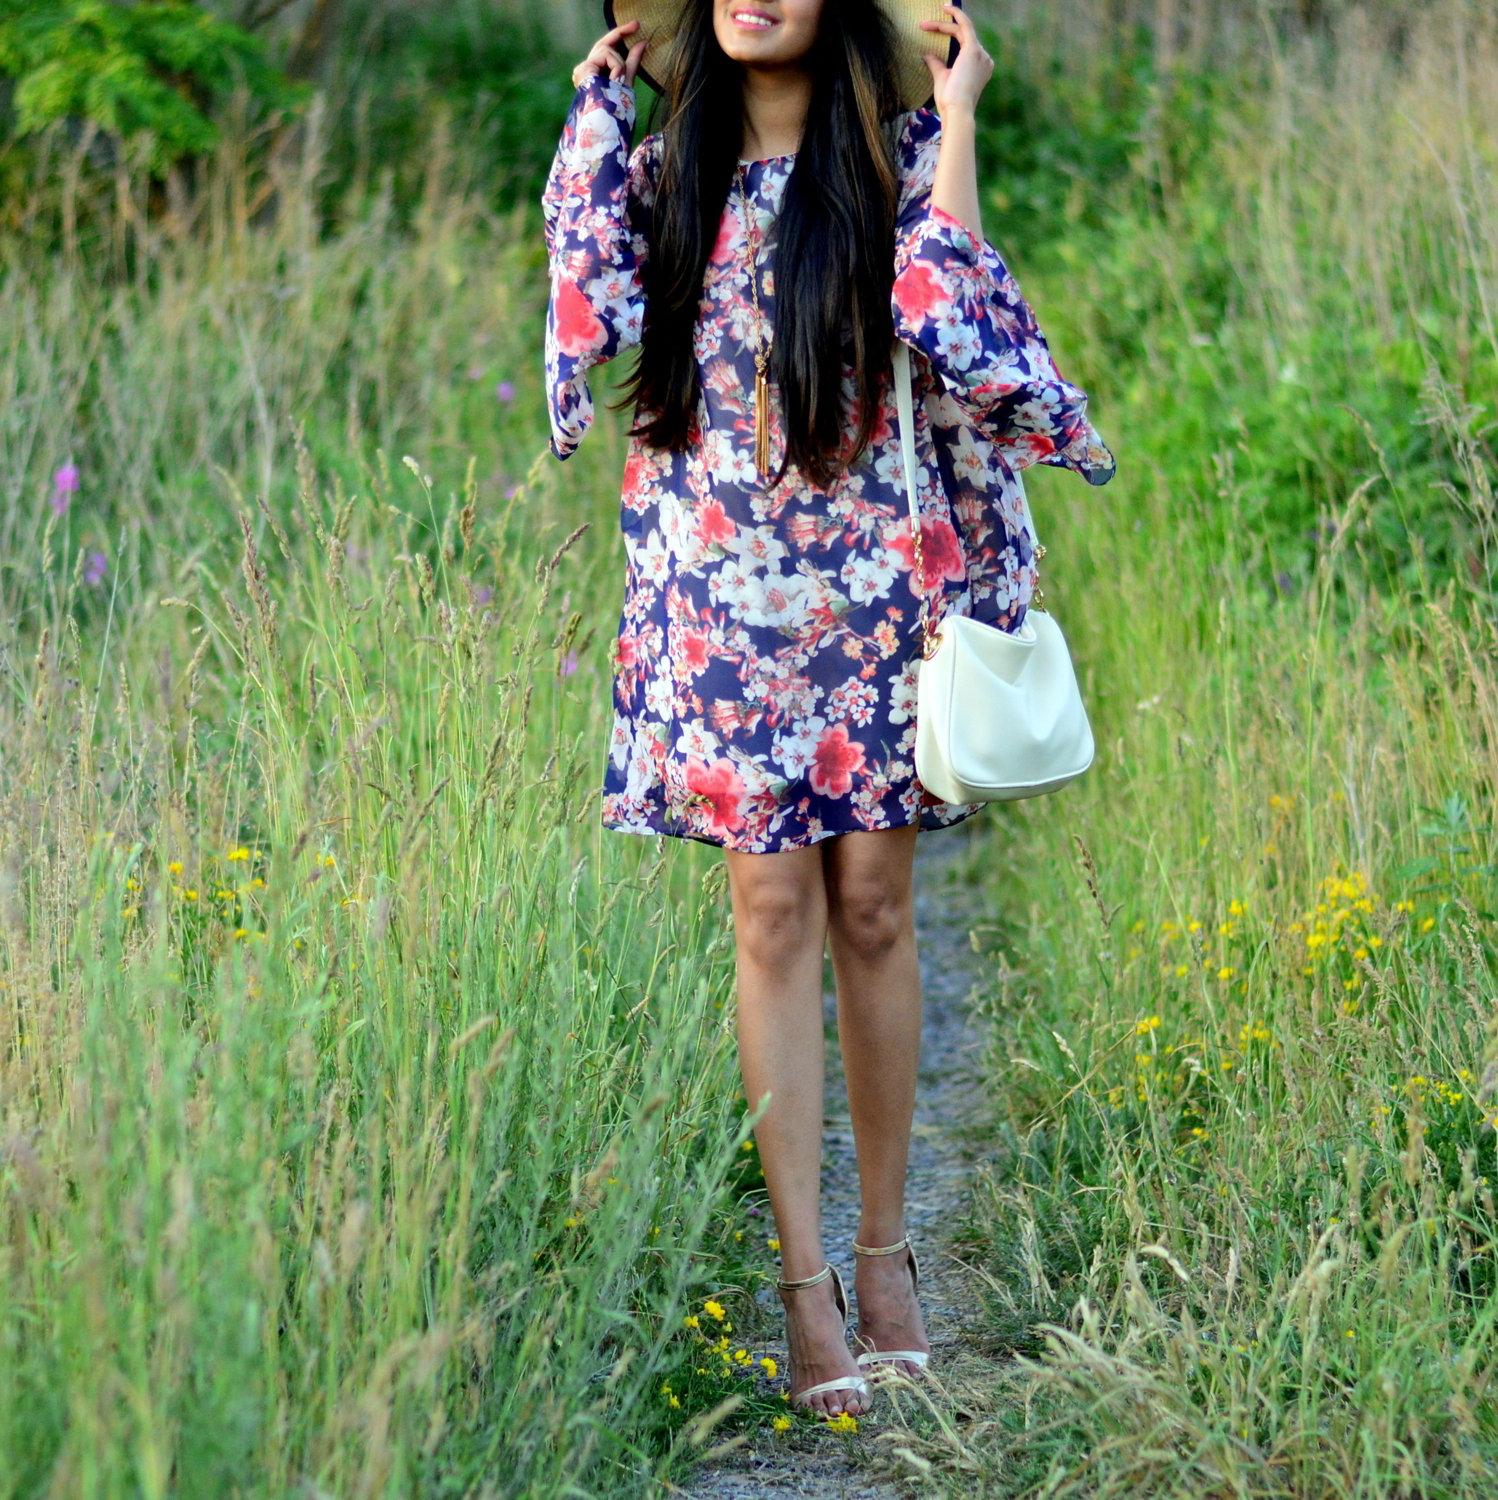 bell-sleeves-floral-dress-summer-casual-blogger-outfit 2